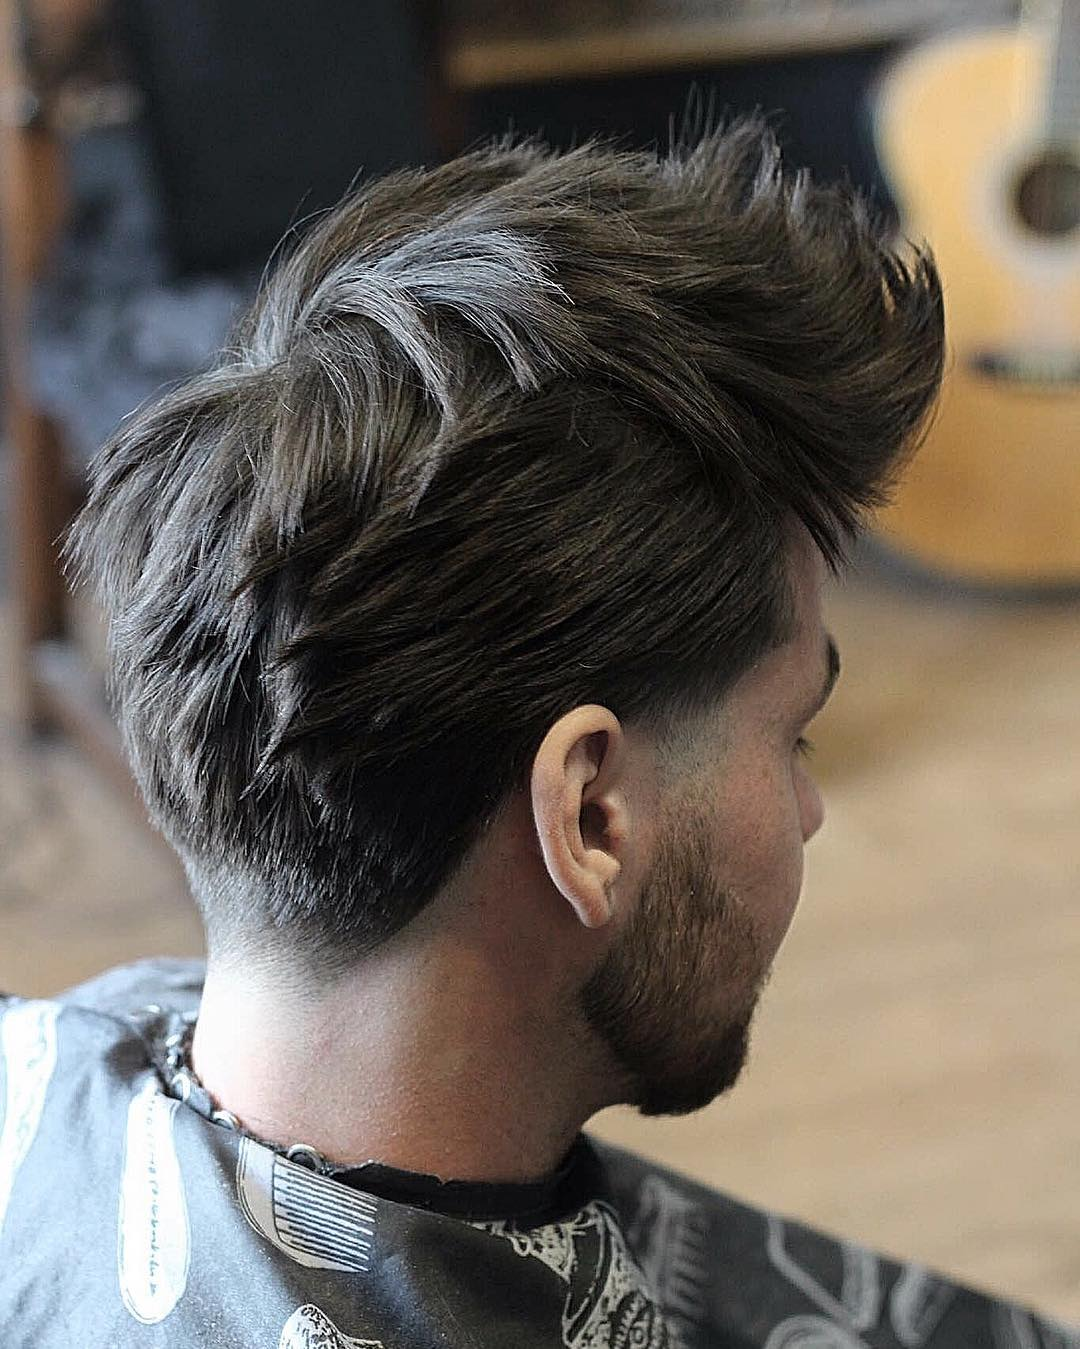 conortaaffehair-Textured Spikey Hair From the Back